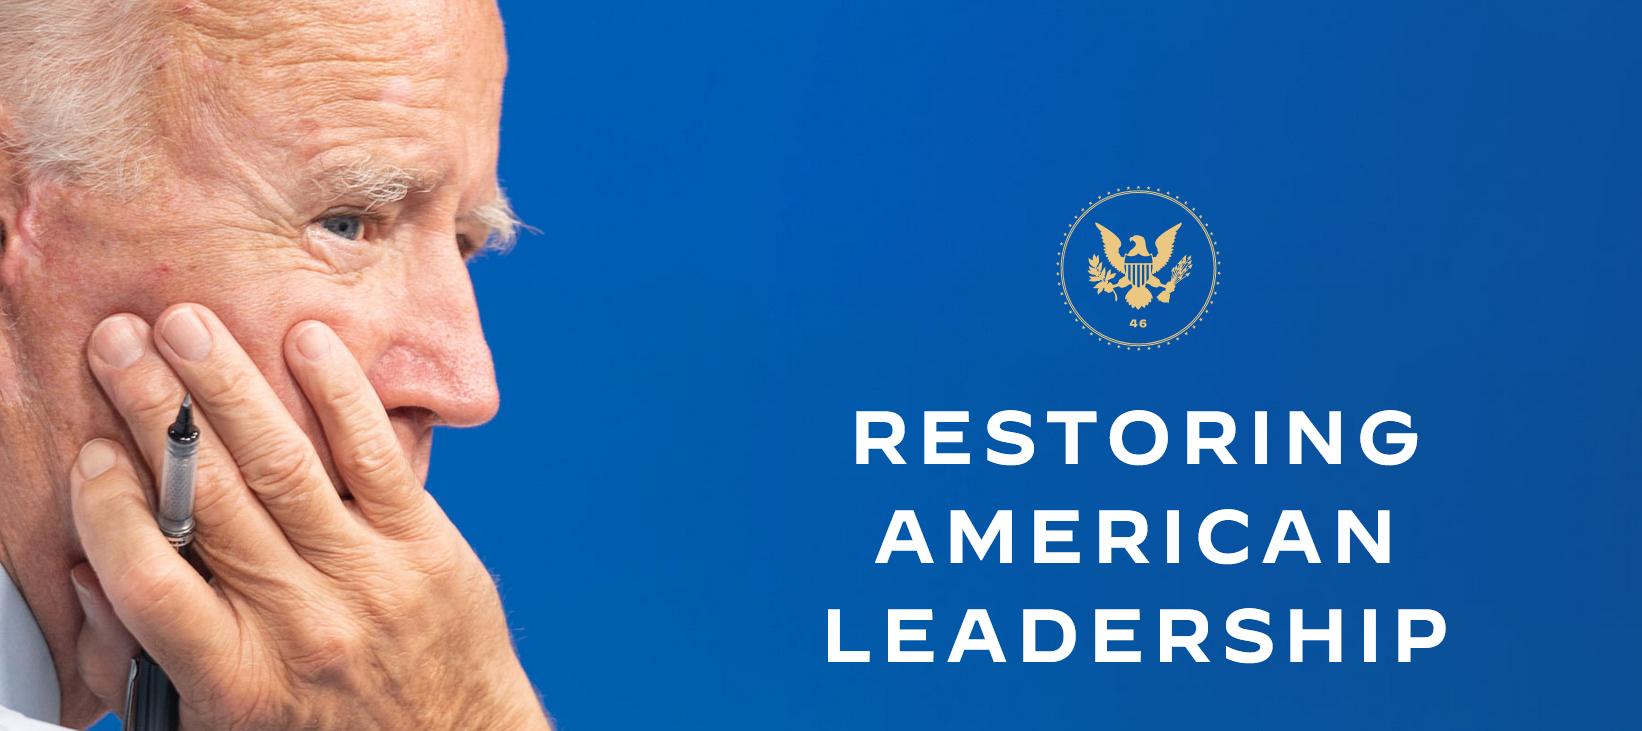 We need your help to keep Big Oil's influence out of the Biden Administration